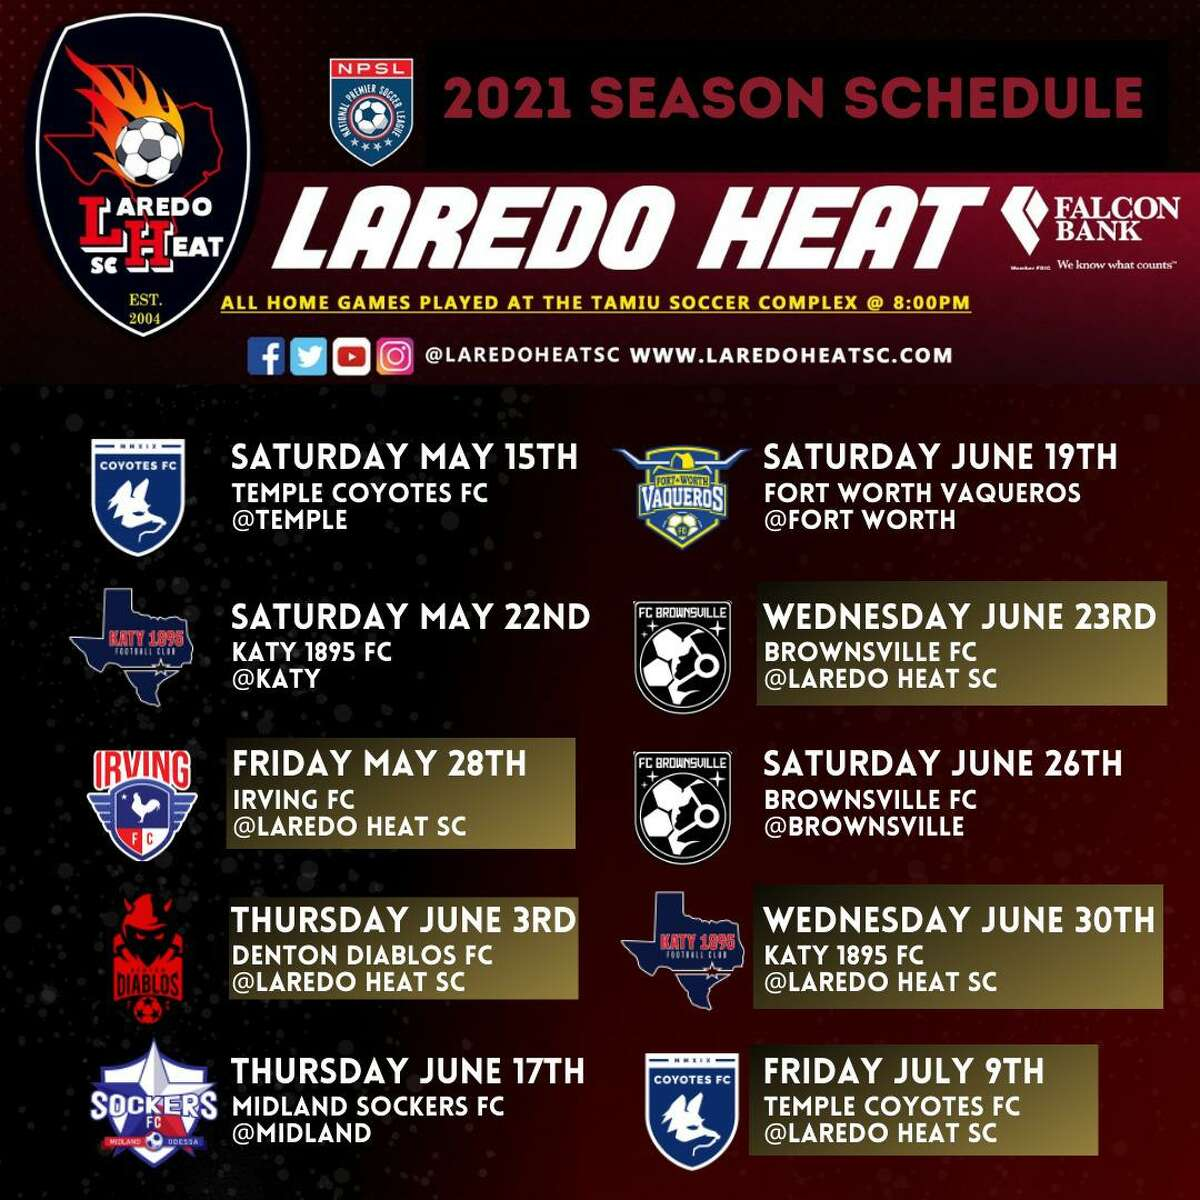 The Laredo Heat announced their 2021 schedule on Monday.